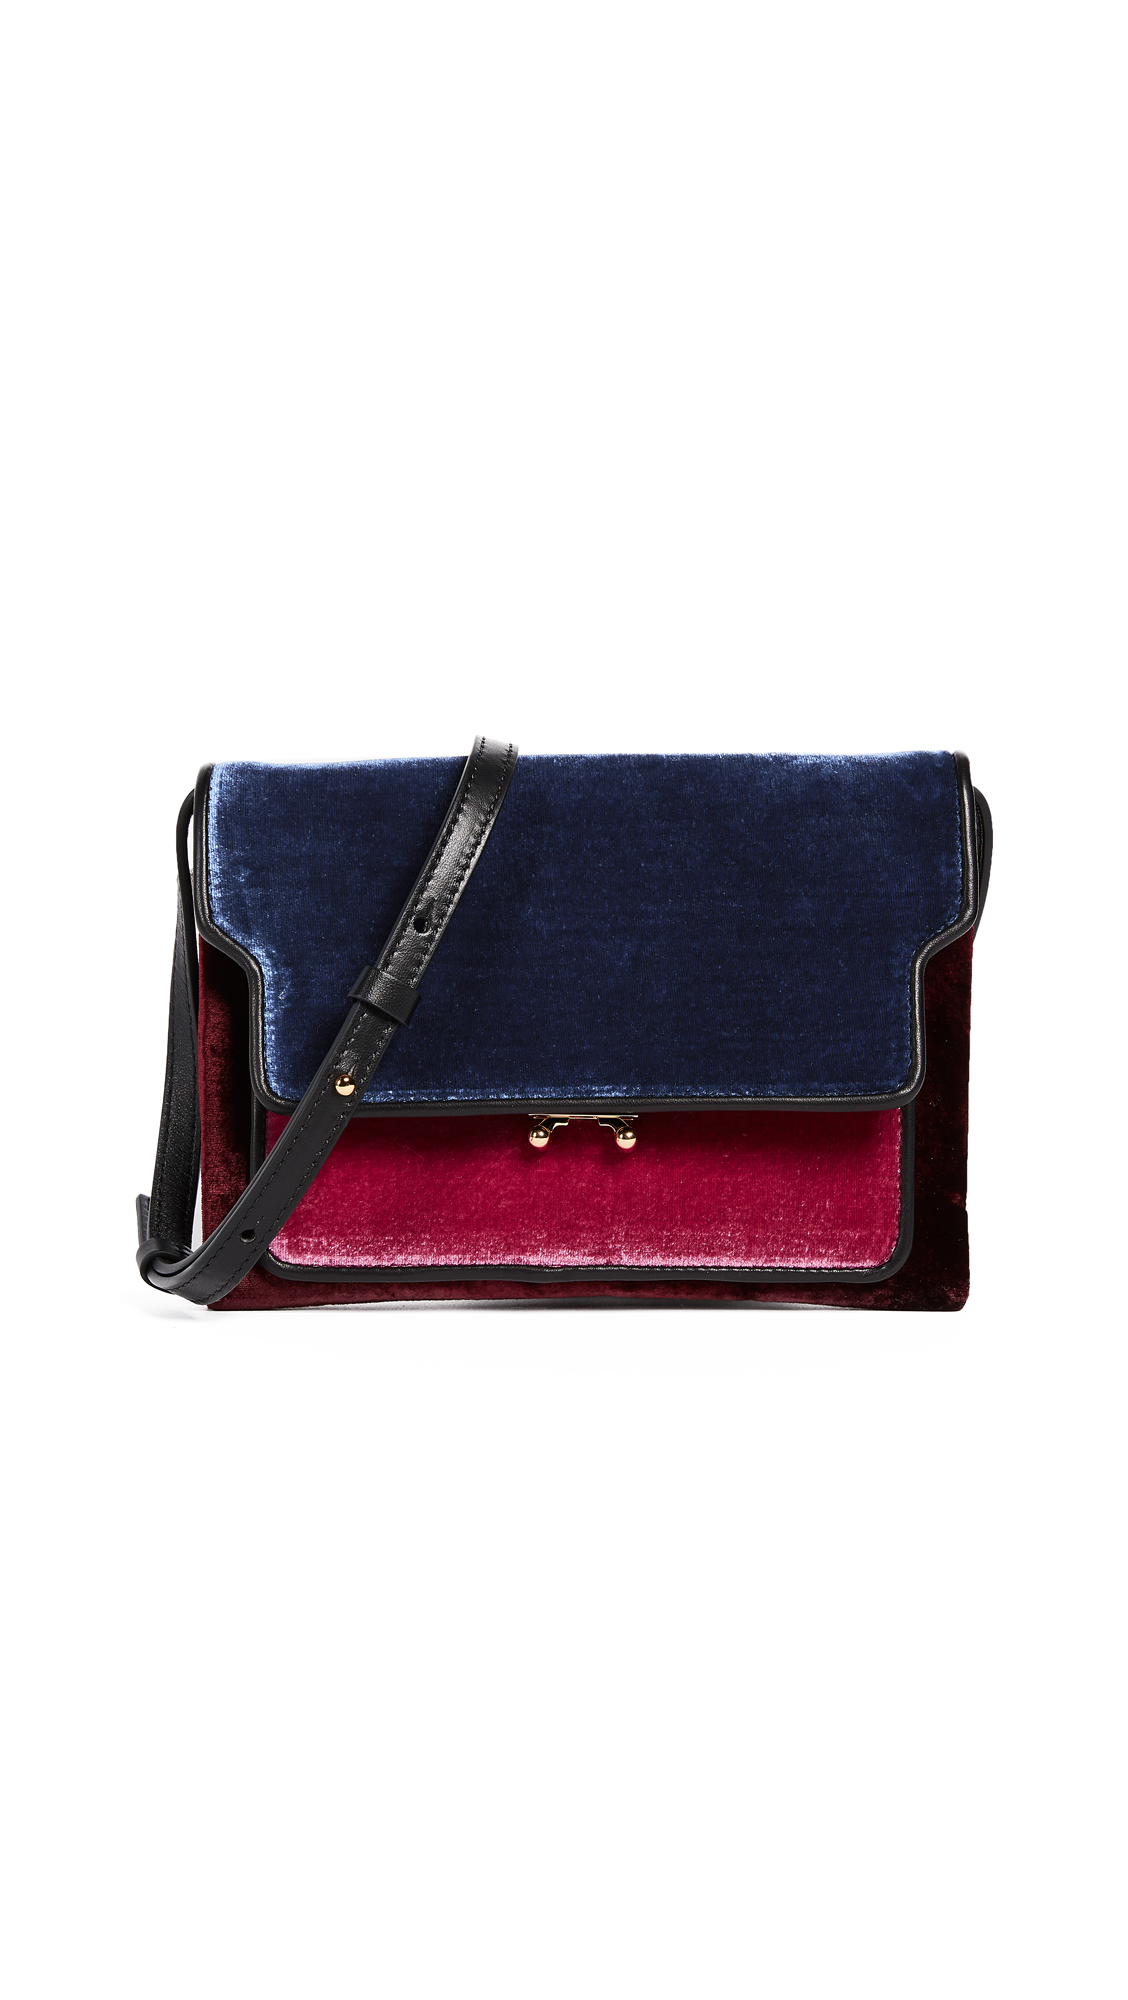 Marni Cross Body Bag - Iolite/Cassis/Ruby/Black